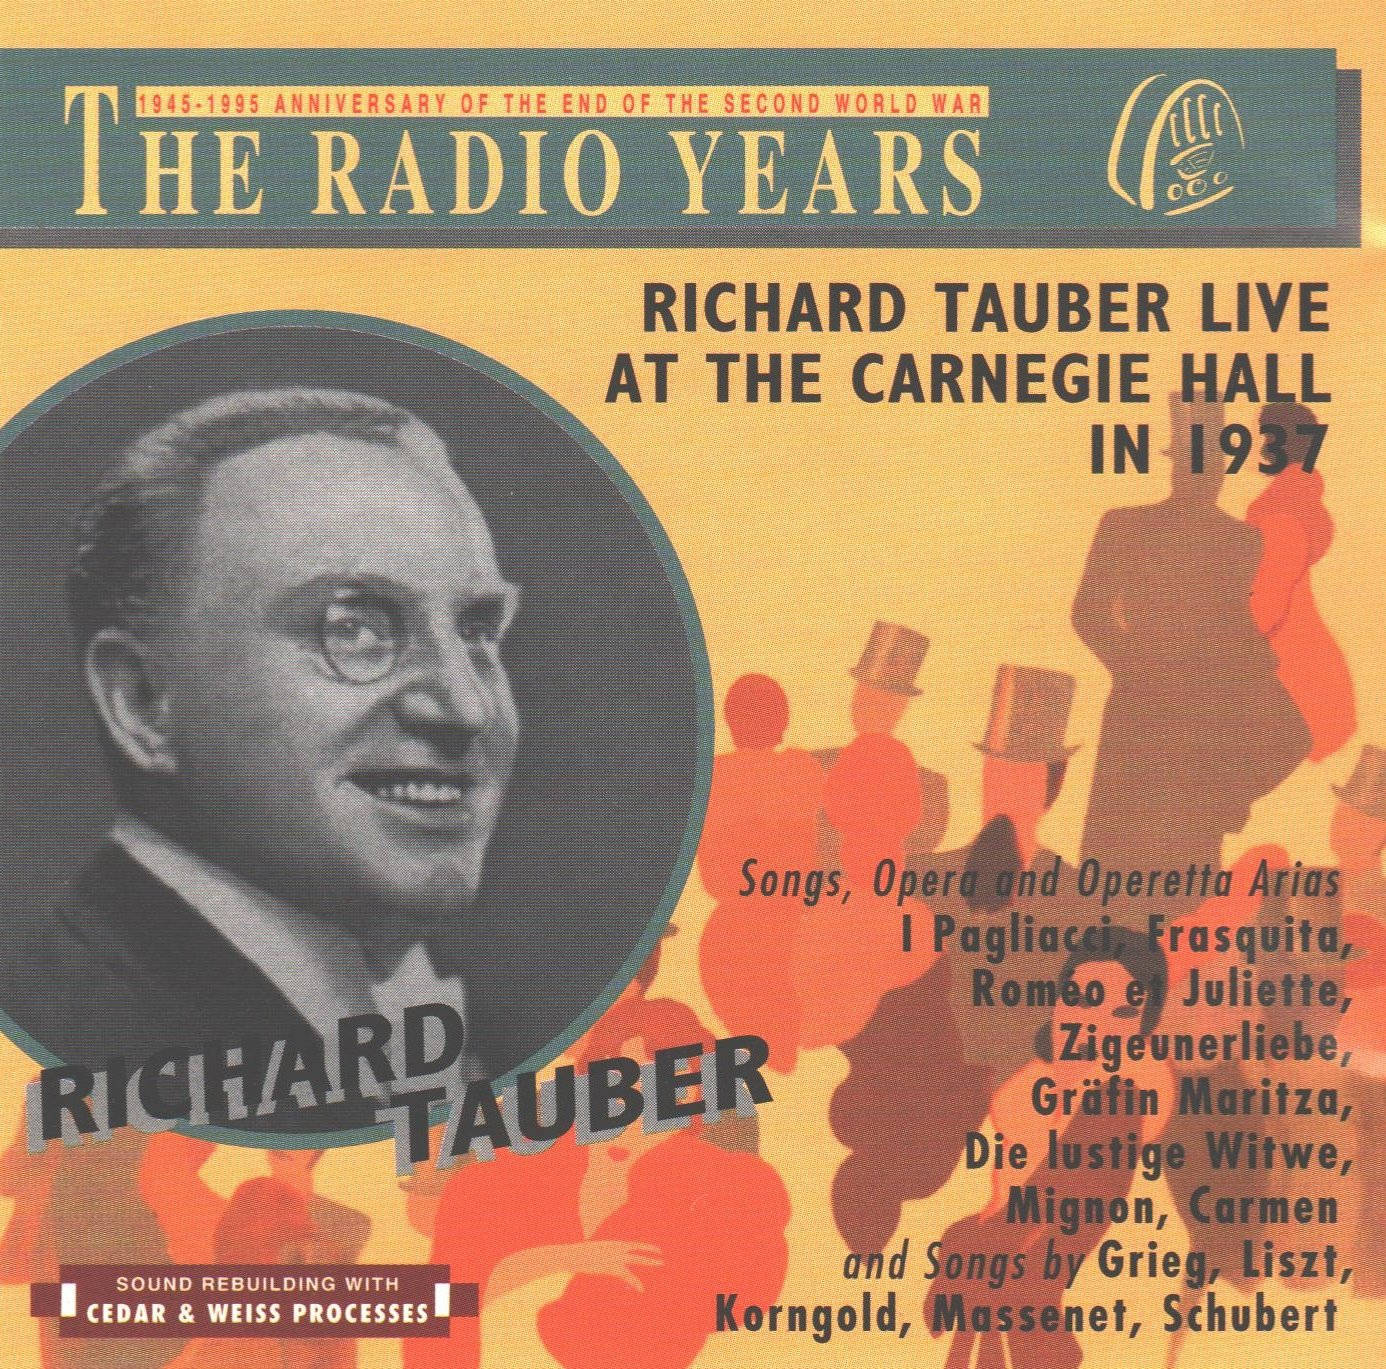 Richard Tauber Live at the Carnegie Hall in 1937: Songs, Opera and Operetta Arias (The Radio Years) by The Radio Years